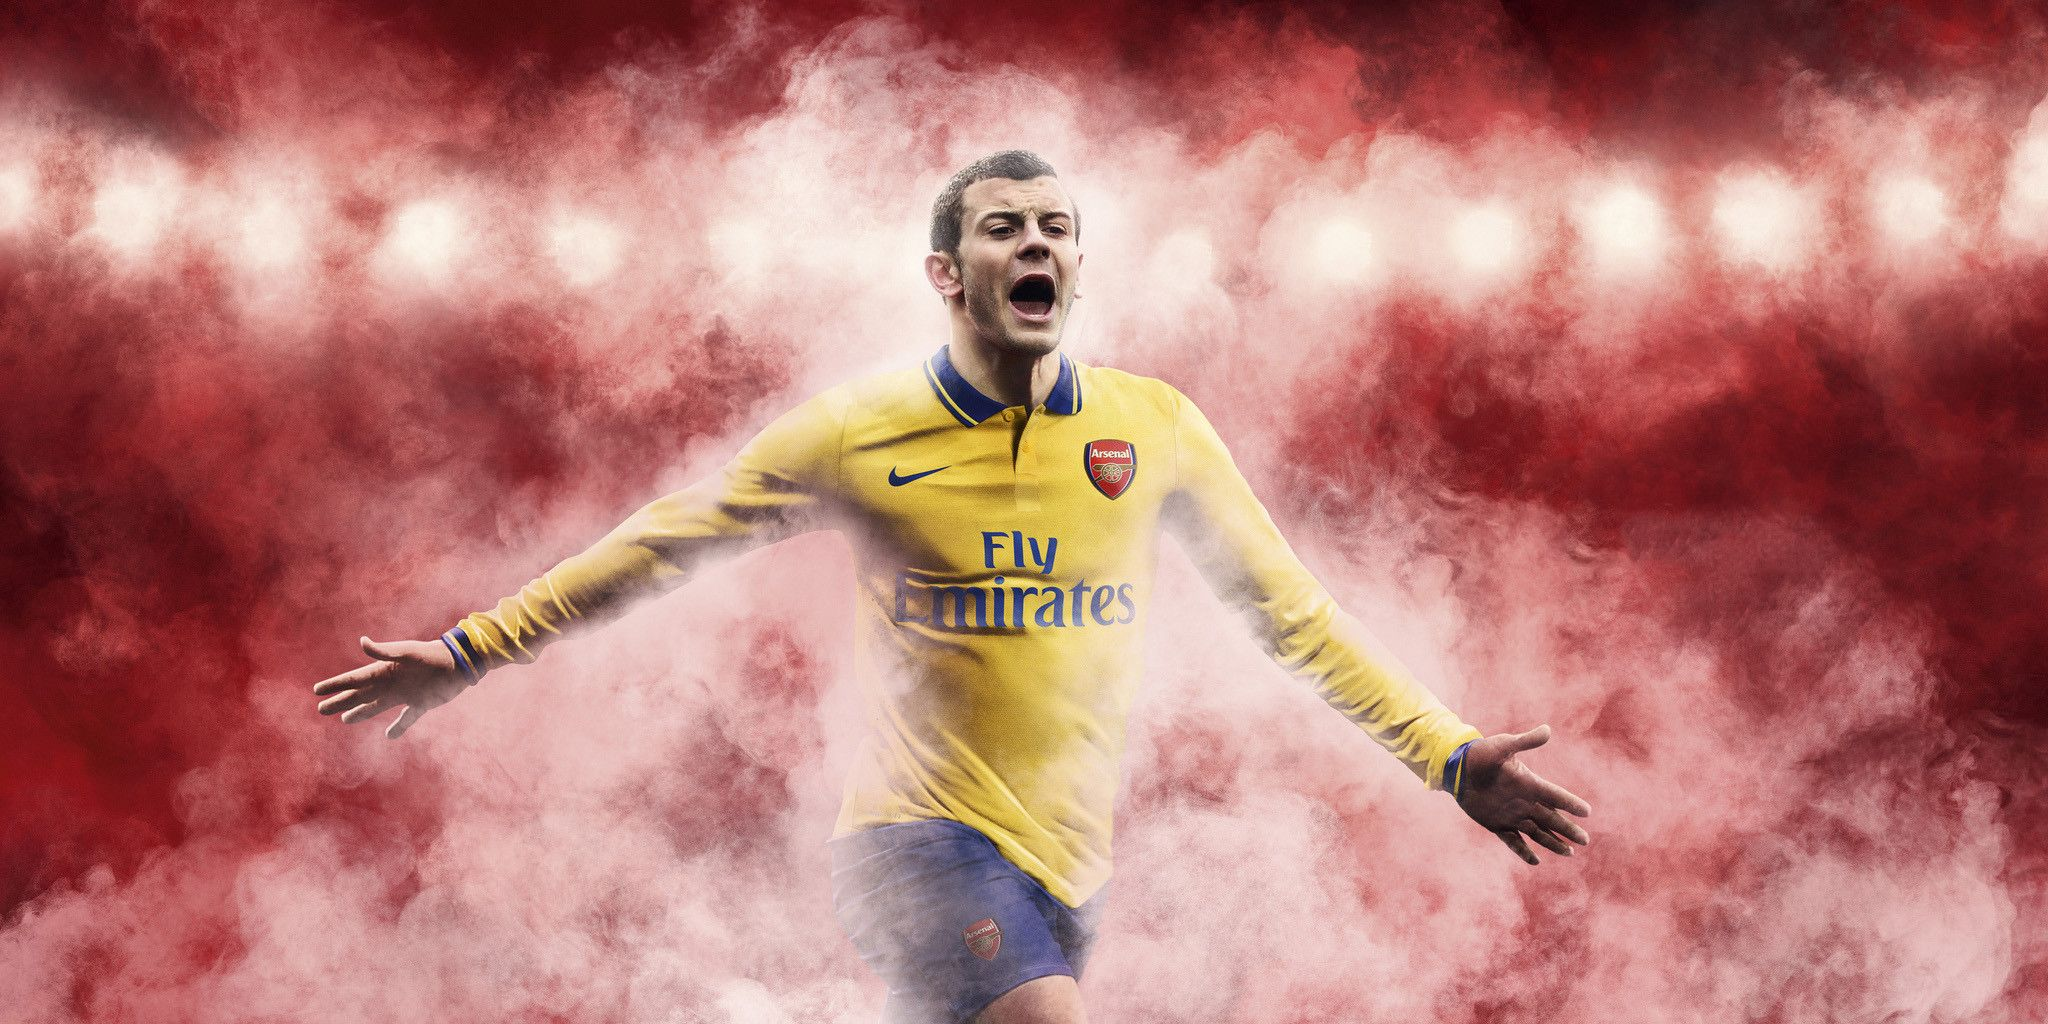 jack wilshere arsenal fc 2015 windows wallpapers hd download free ...